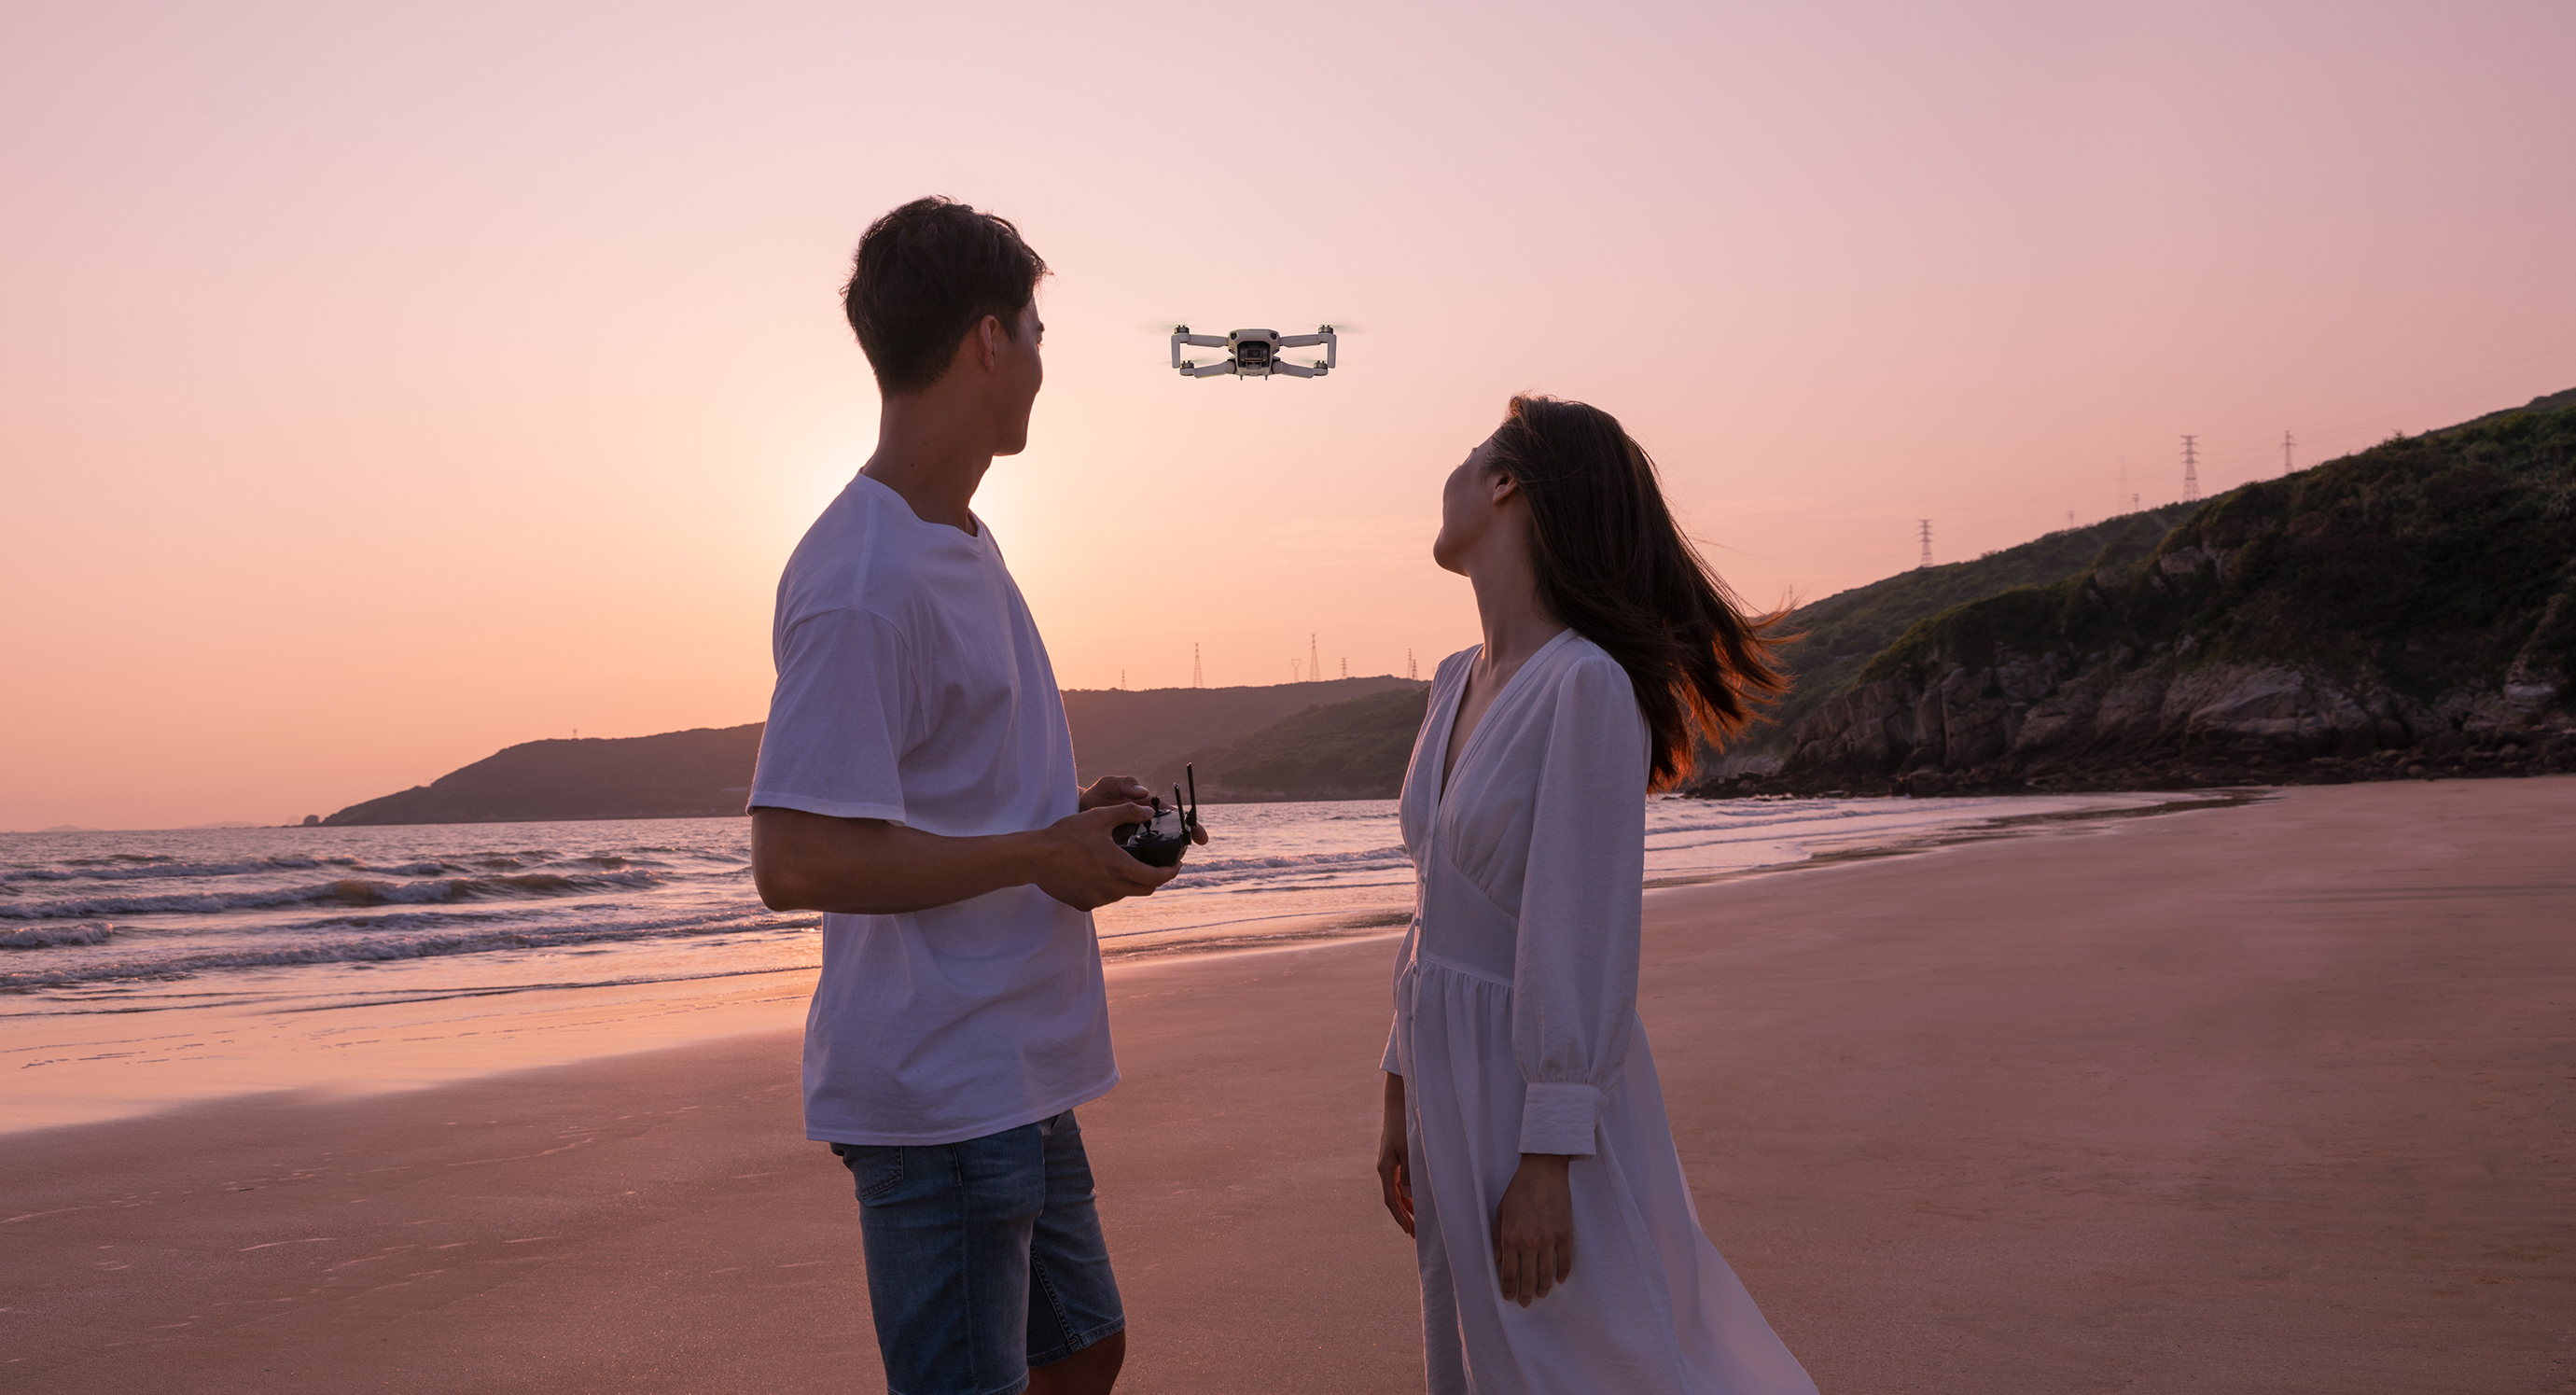 Mavic Mini Beginner Guide: Everything You Need to Know - DJI Guides